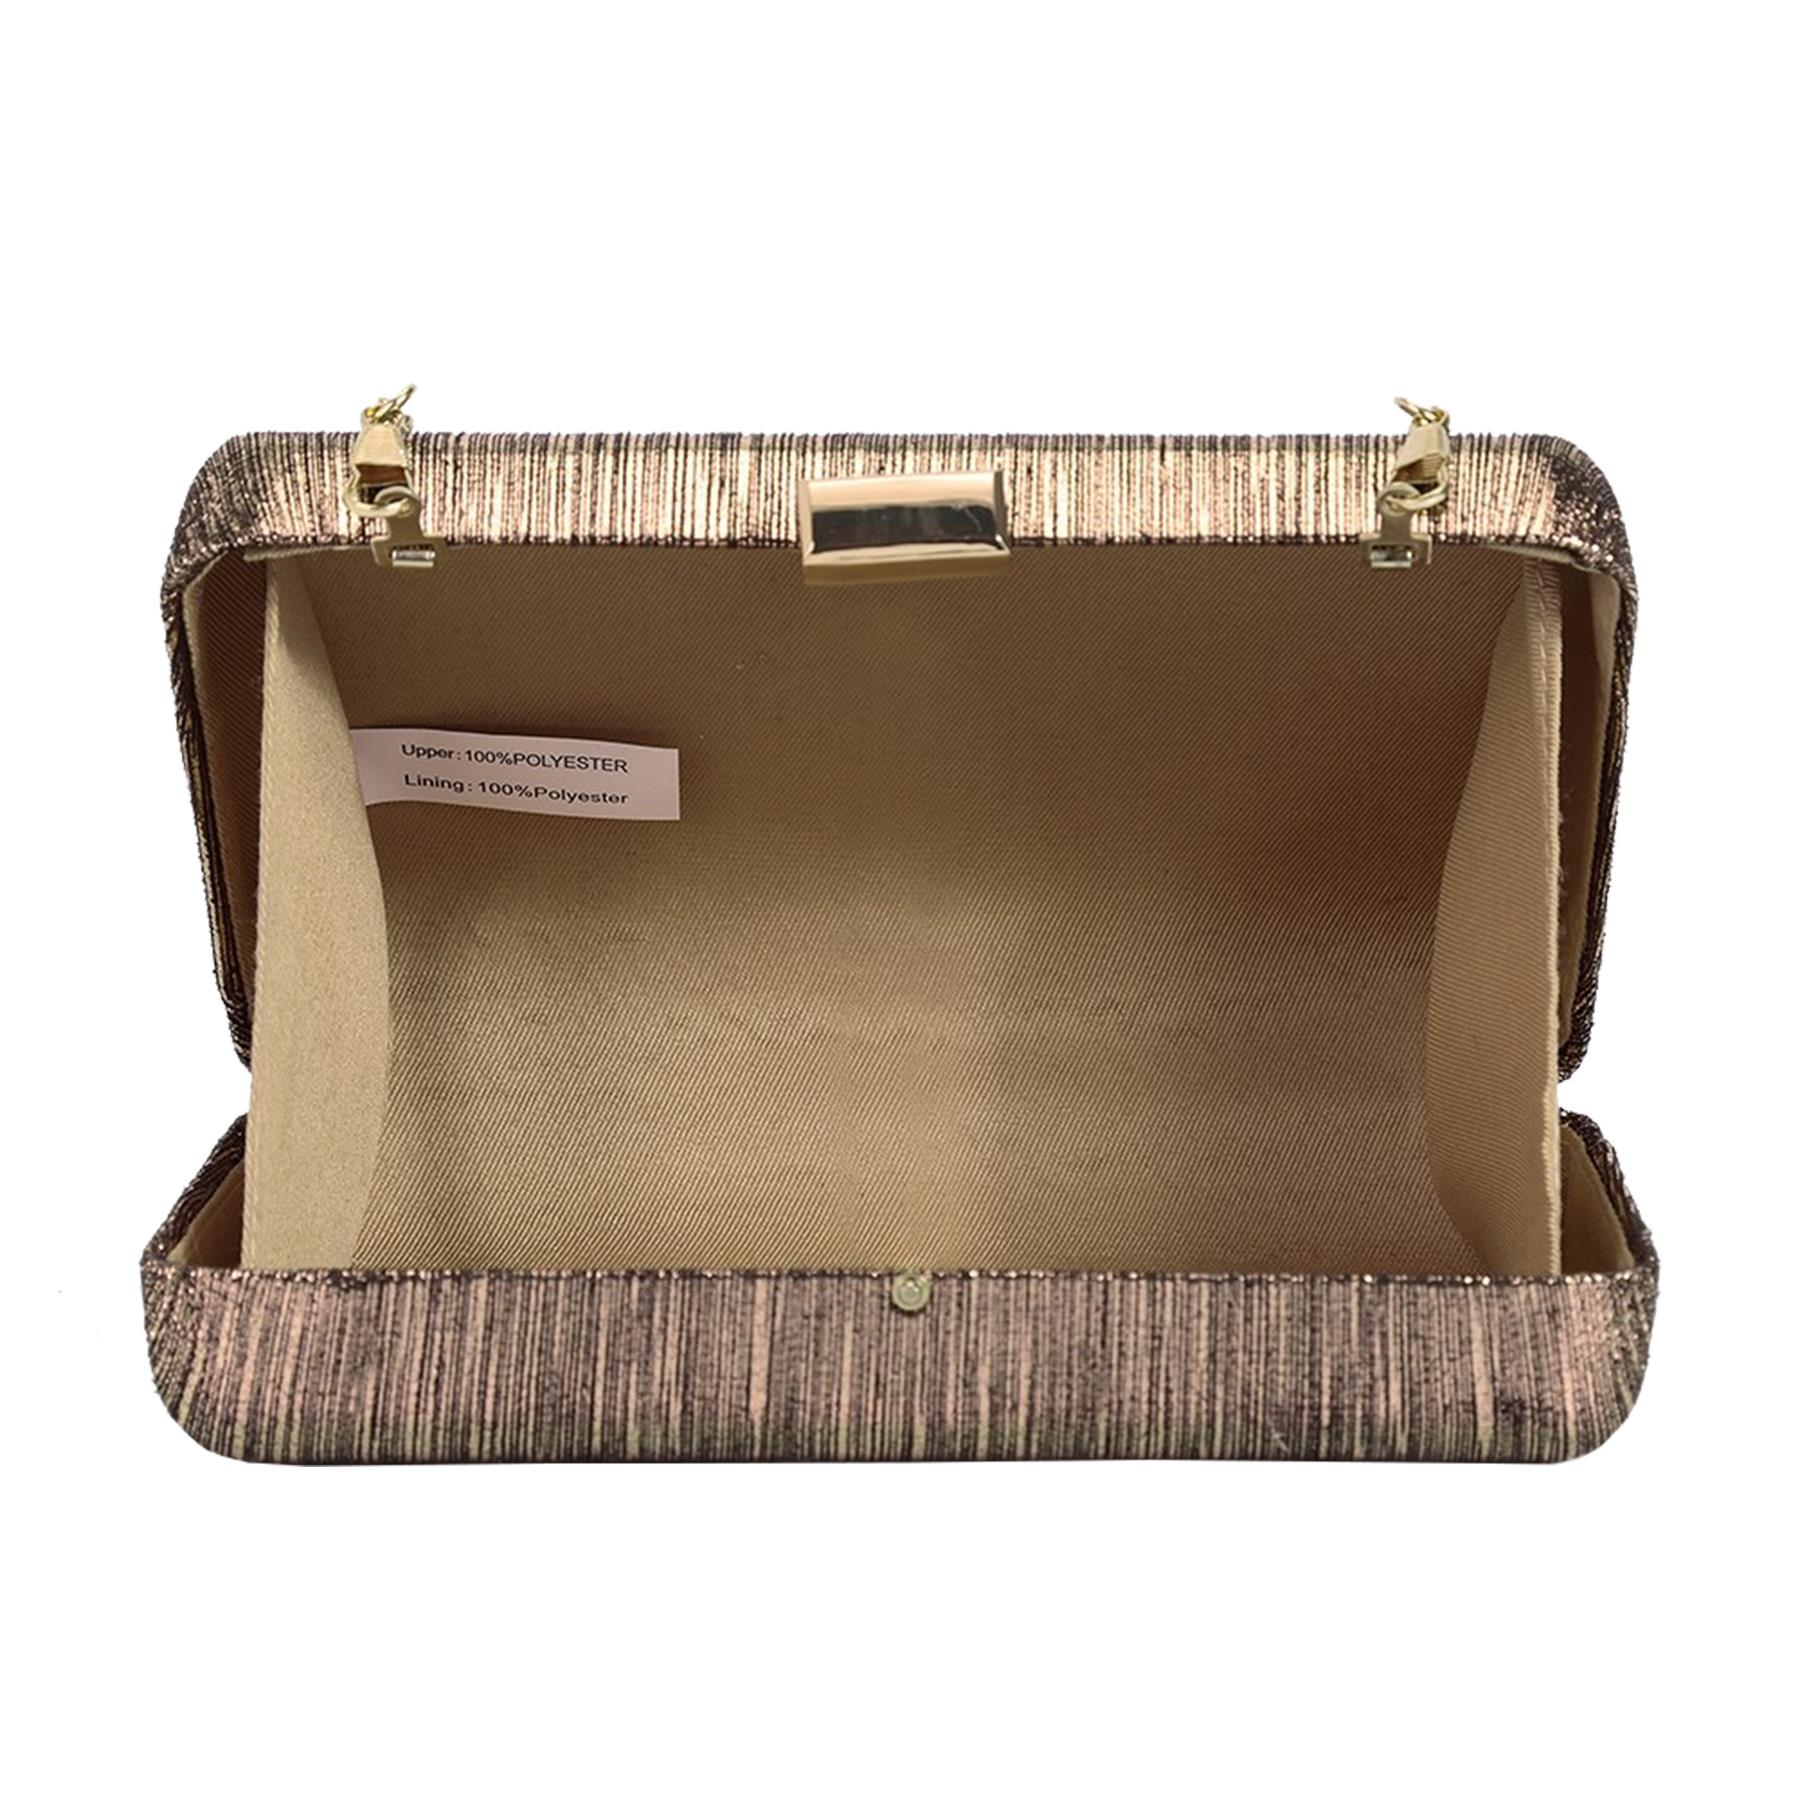 New-Ladies-Hard-Compact-Metallic-Effect-Faux-Leather-Party-Clutch-Bag thumbnail 10